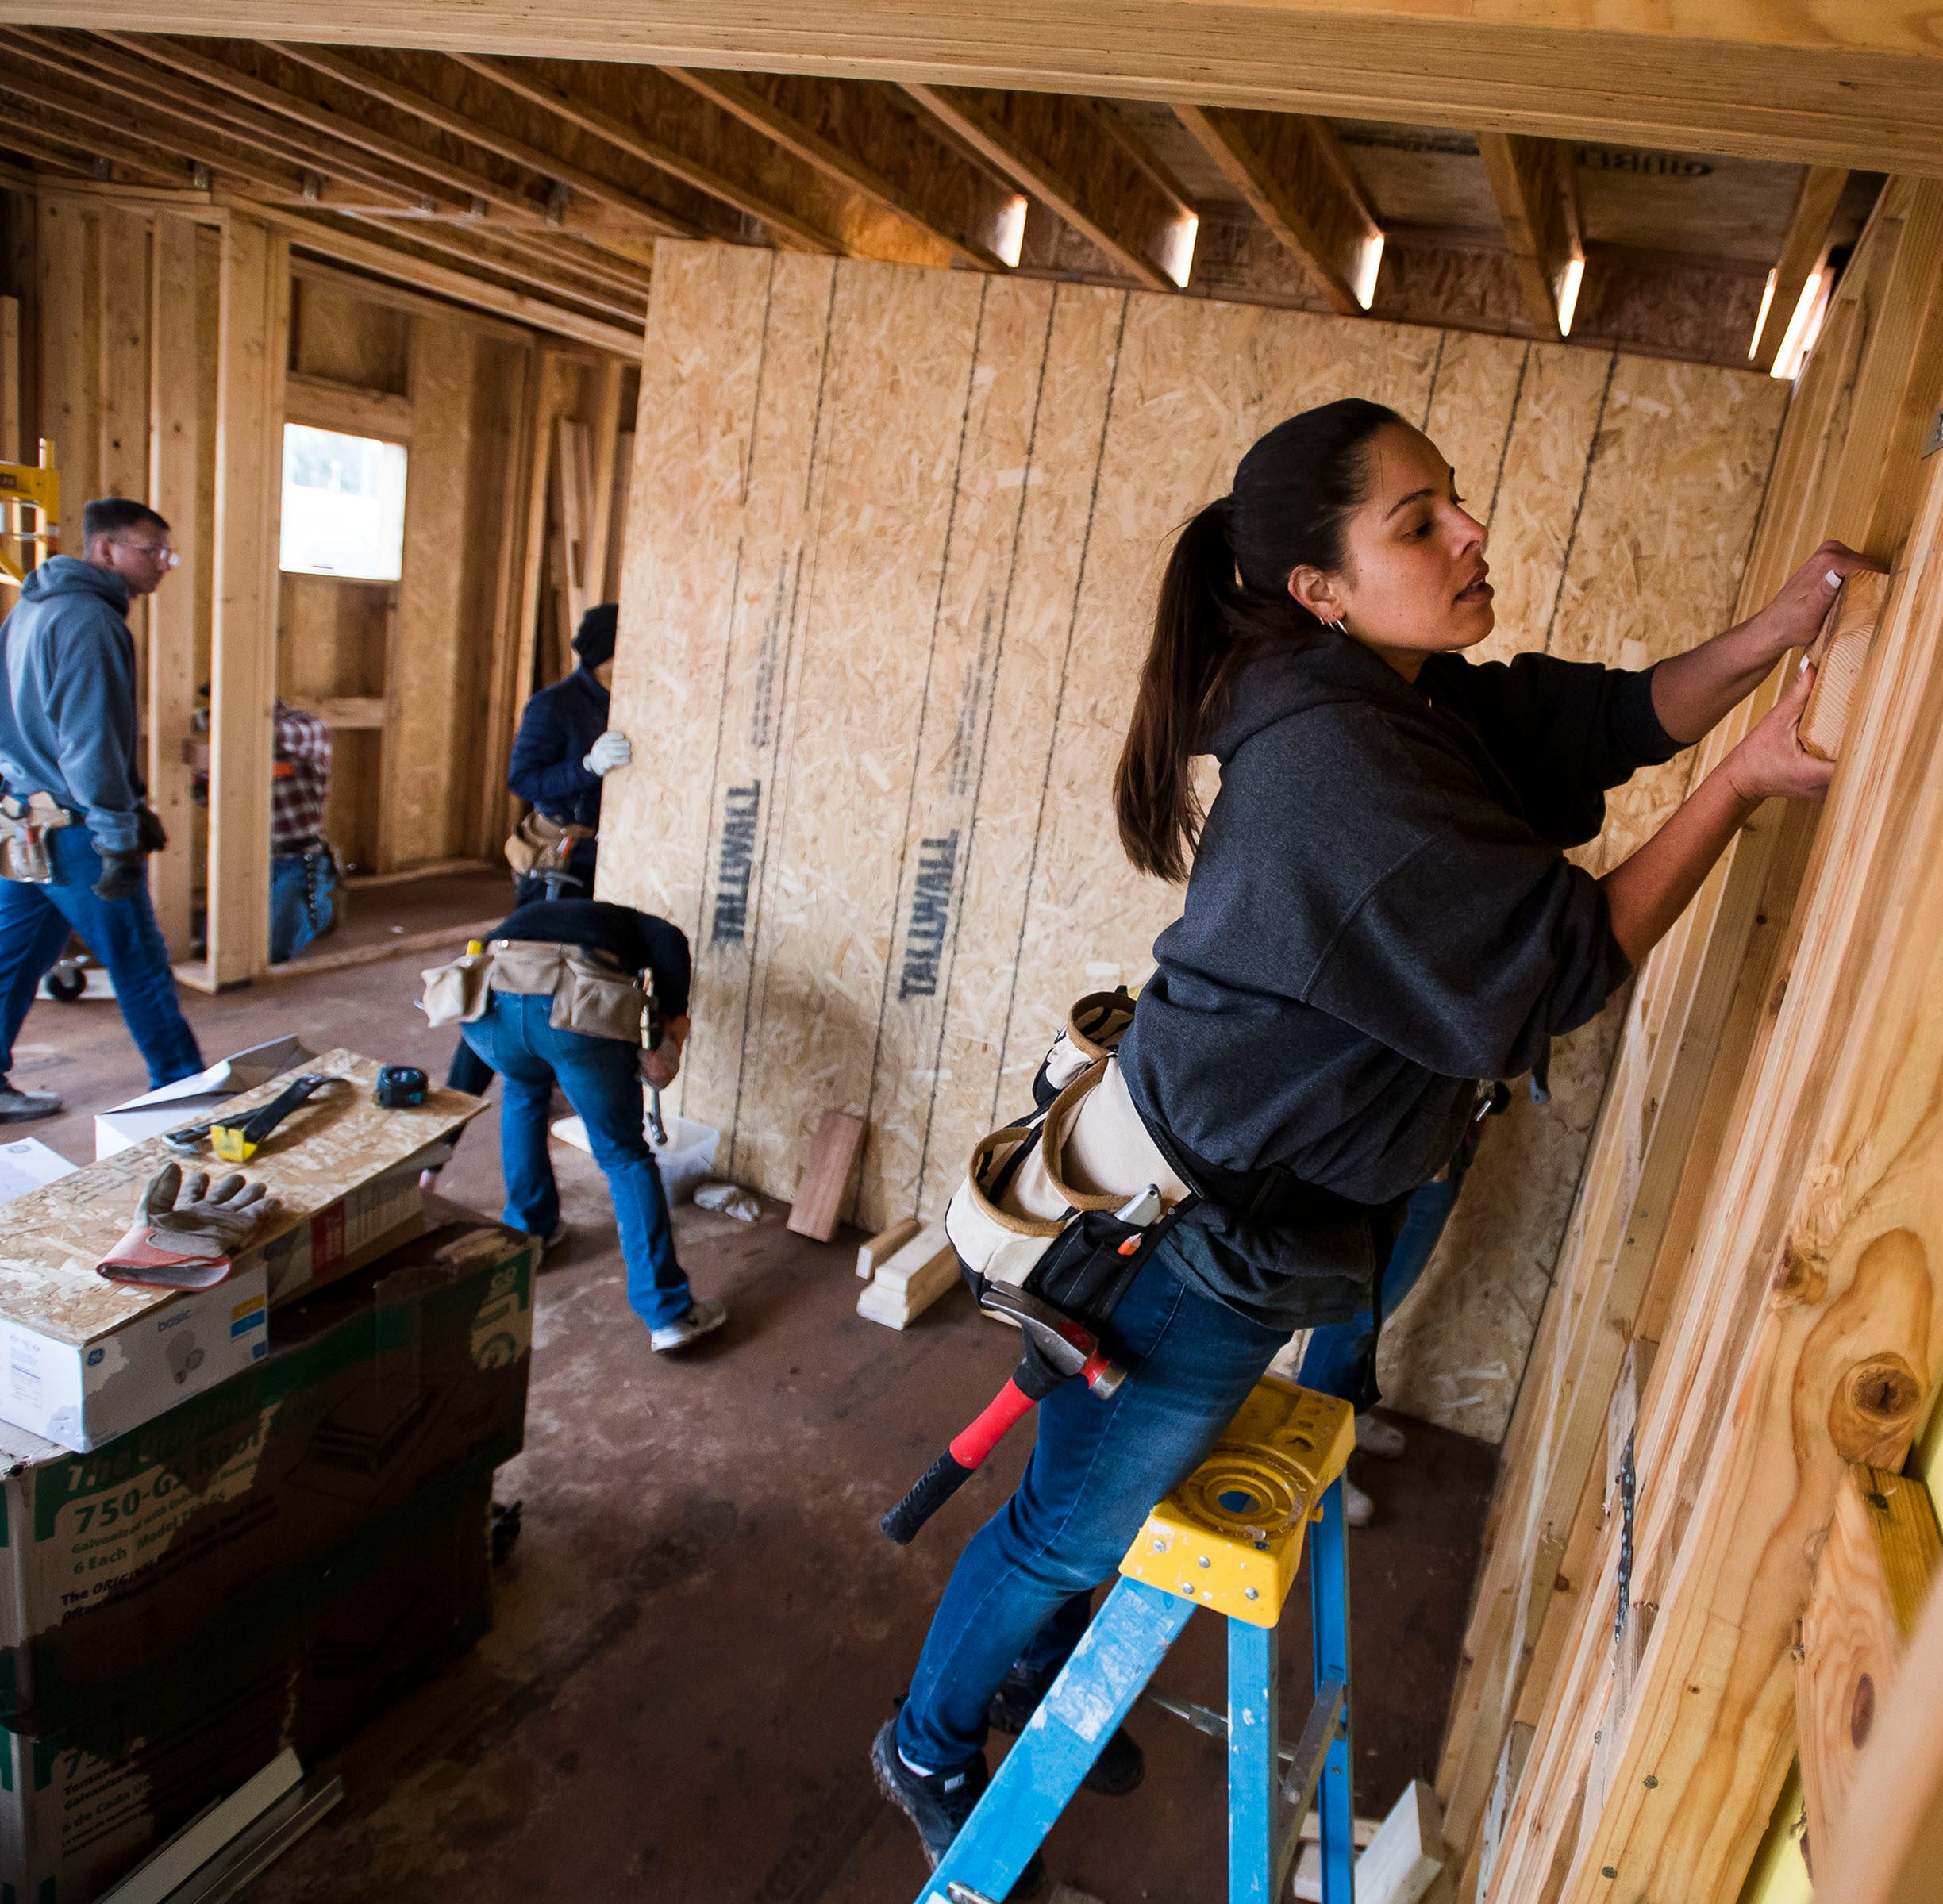 Fort Collins Habitat for Humanity hopes its Harmony Cottages idea spreads